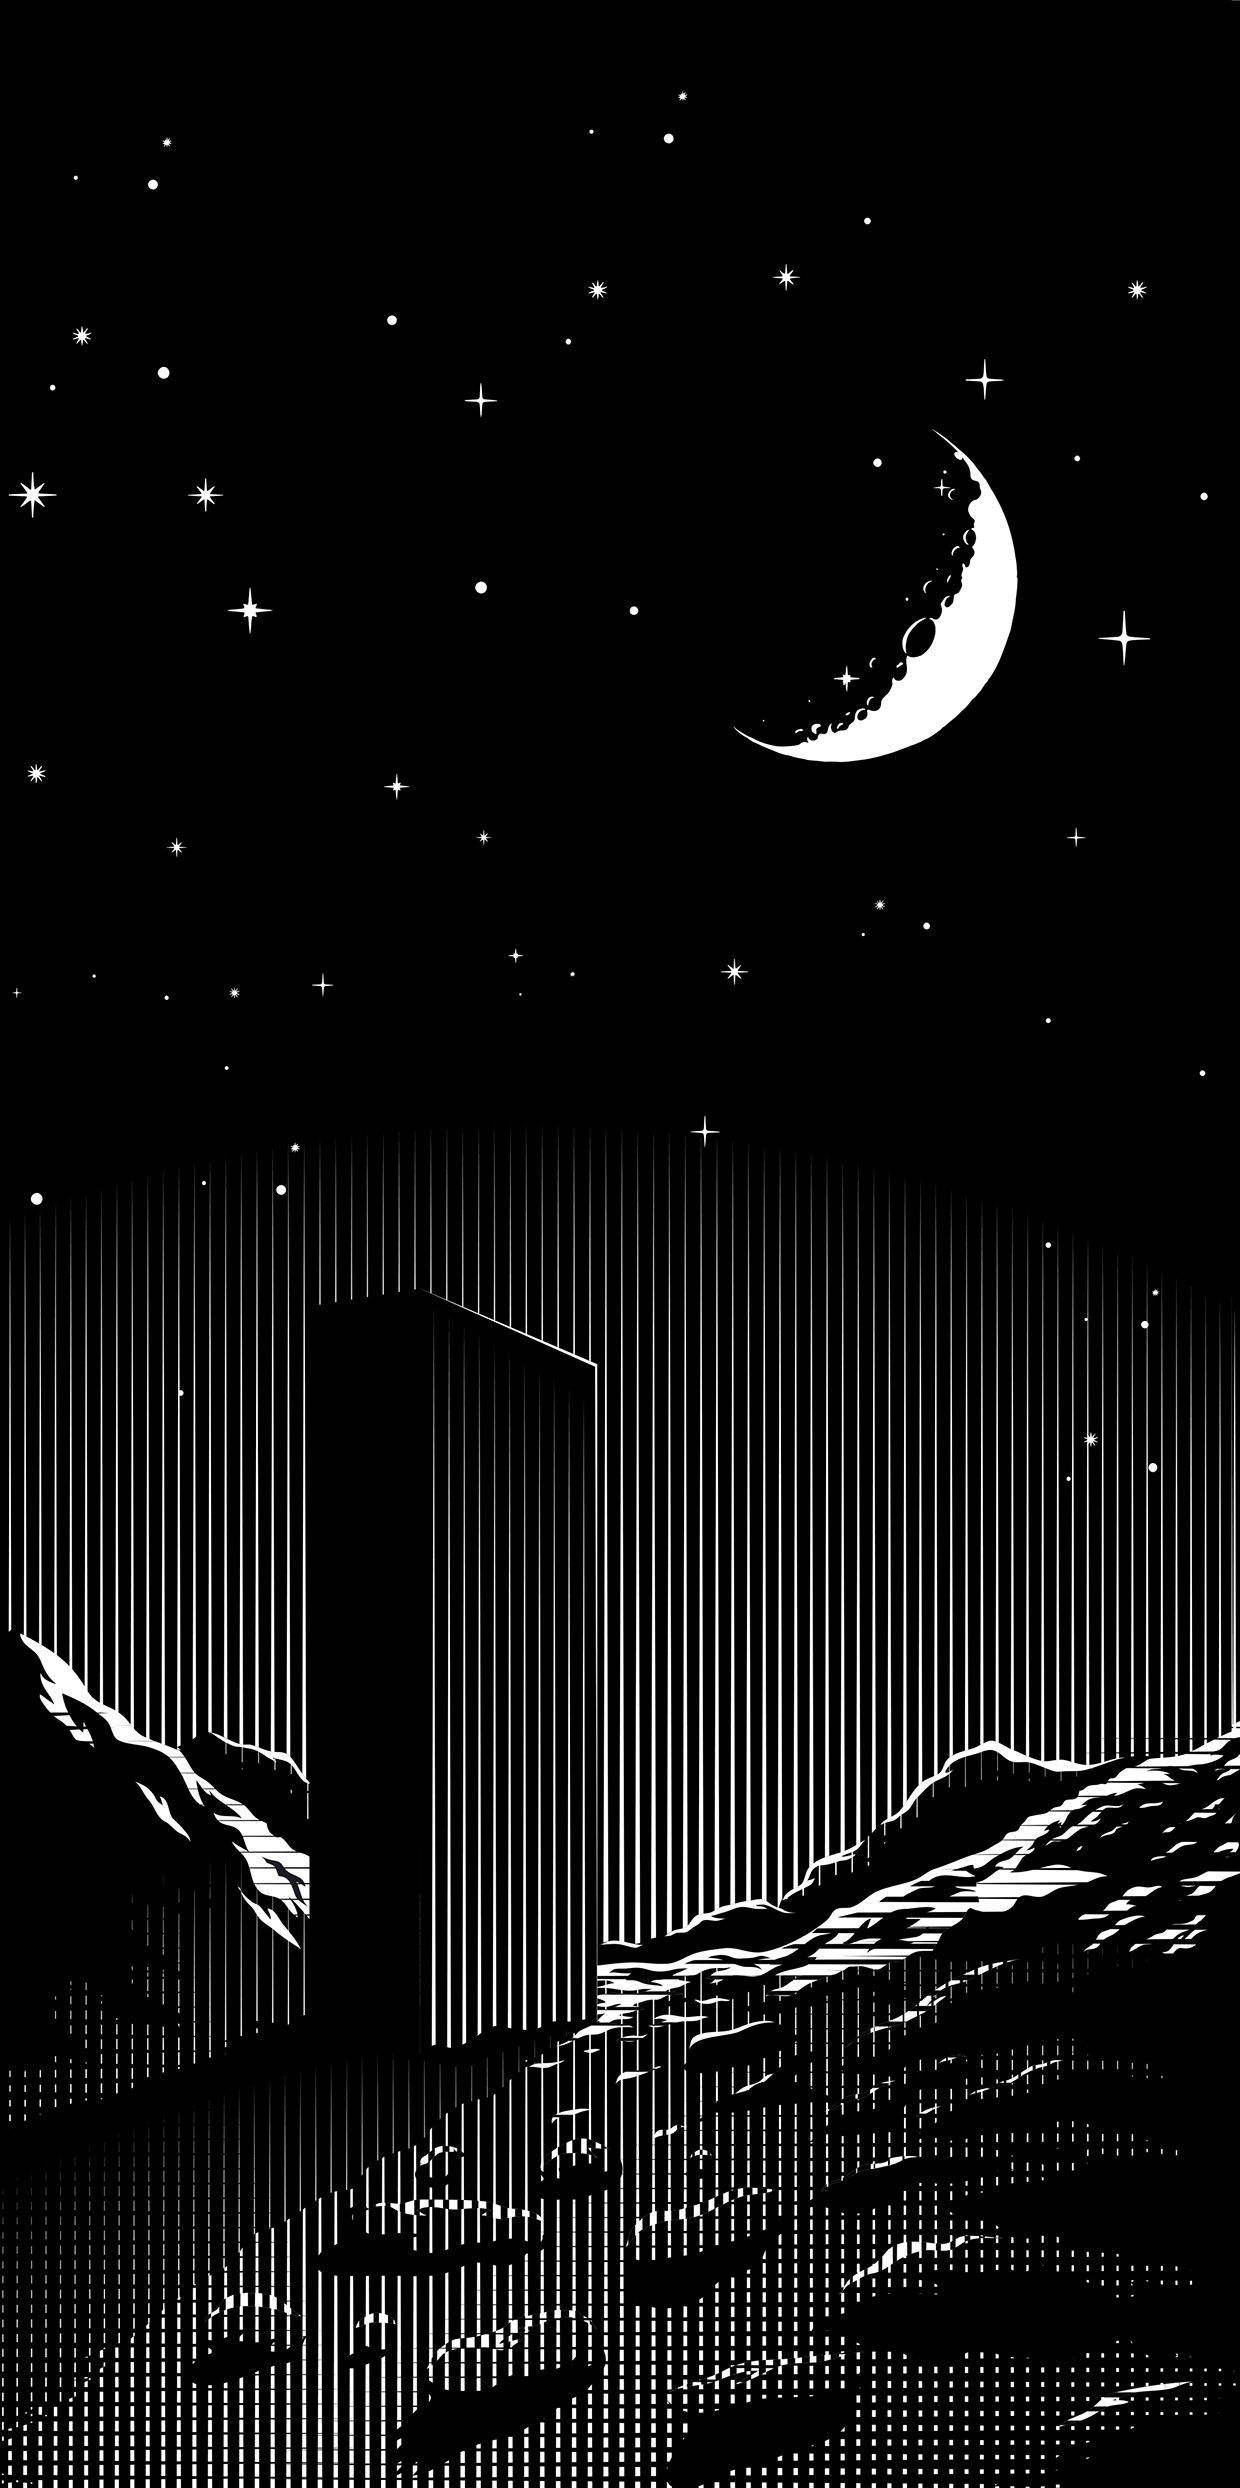 Dark Iphone Wallpaper 4k Darkiphonewallpaper Dark Iphone Wallpaper 4k In 2020 Phone Wallpaper For Men Vaporwave Wallpaper Homescreen Wallpaper